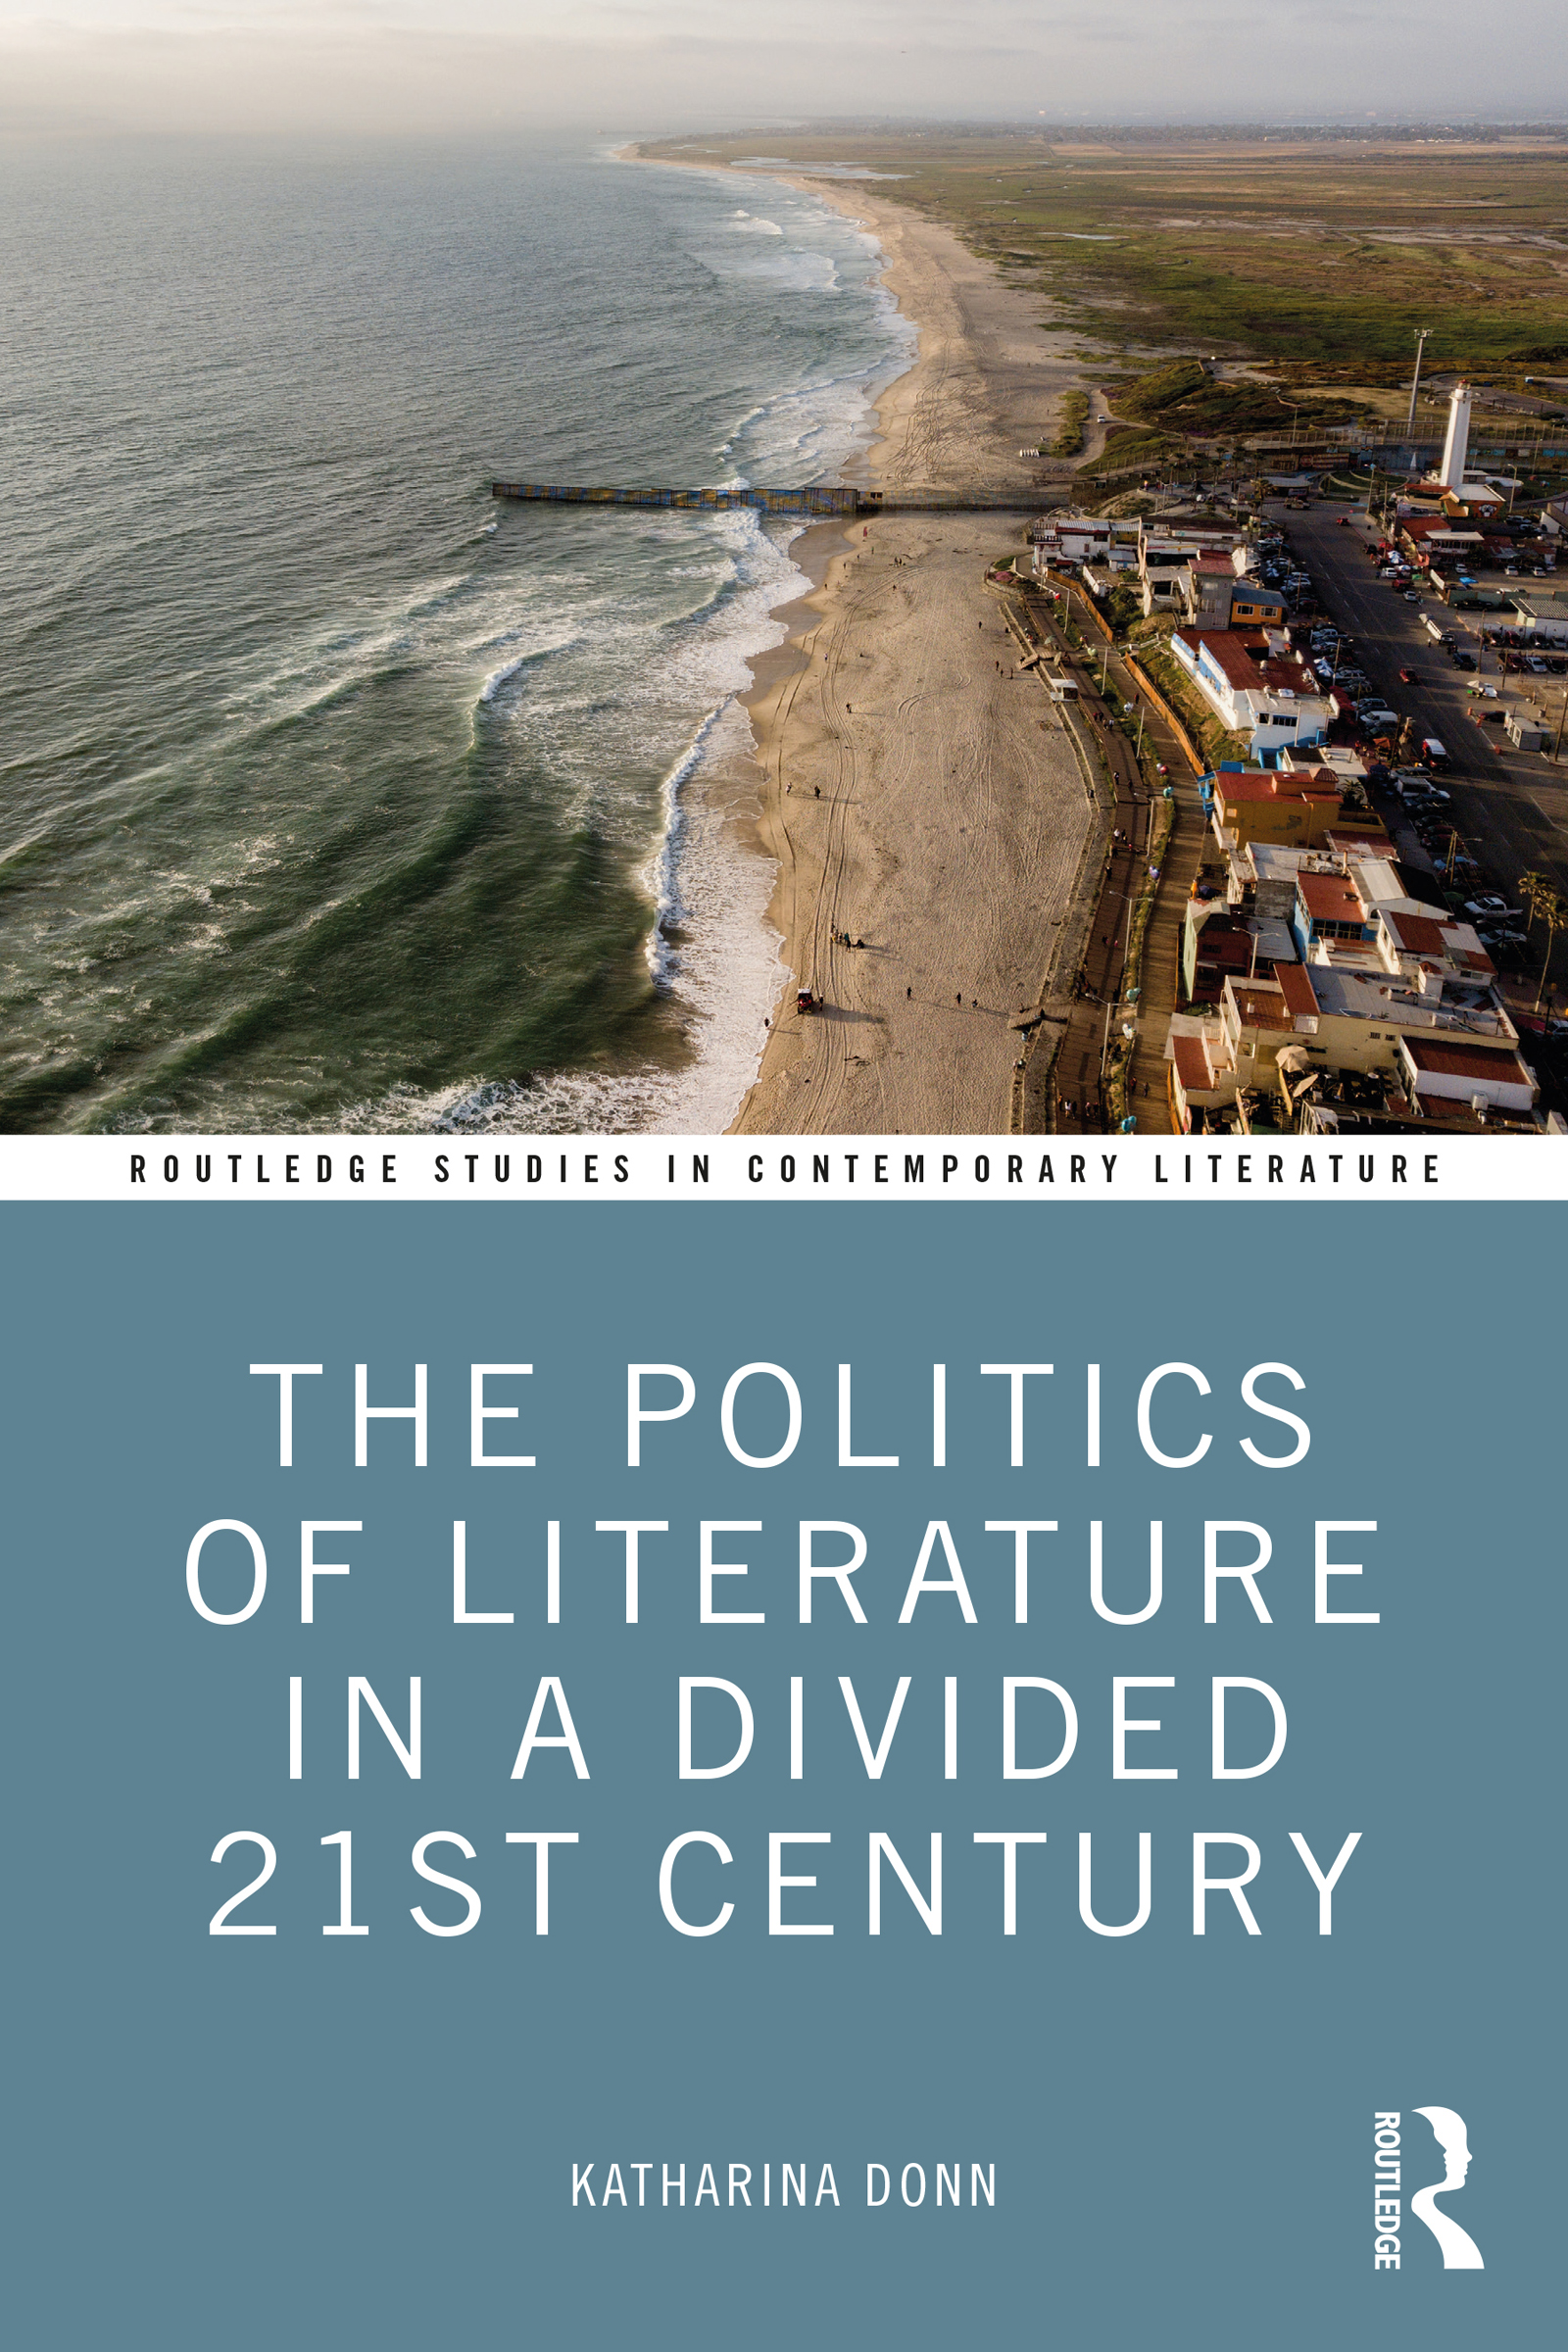 The Politics of Literature in a Divided 21st Century